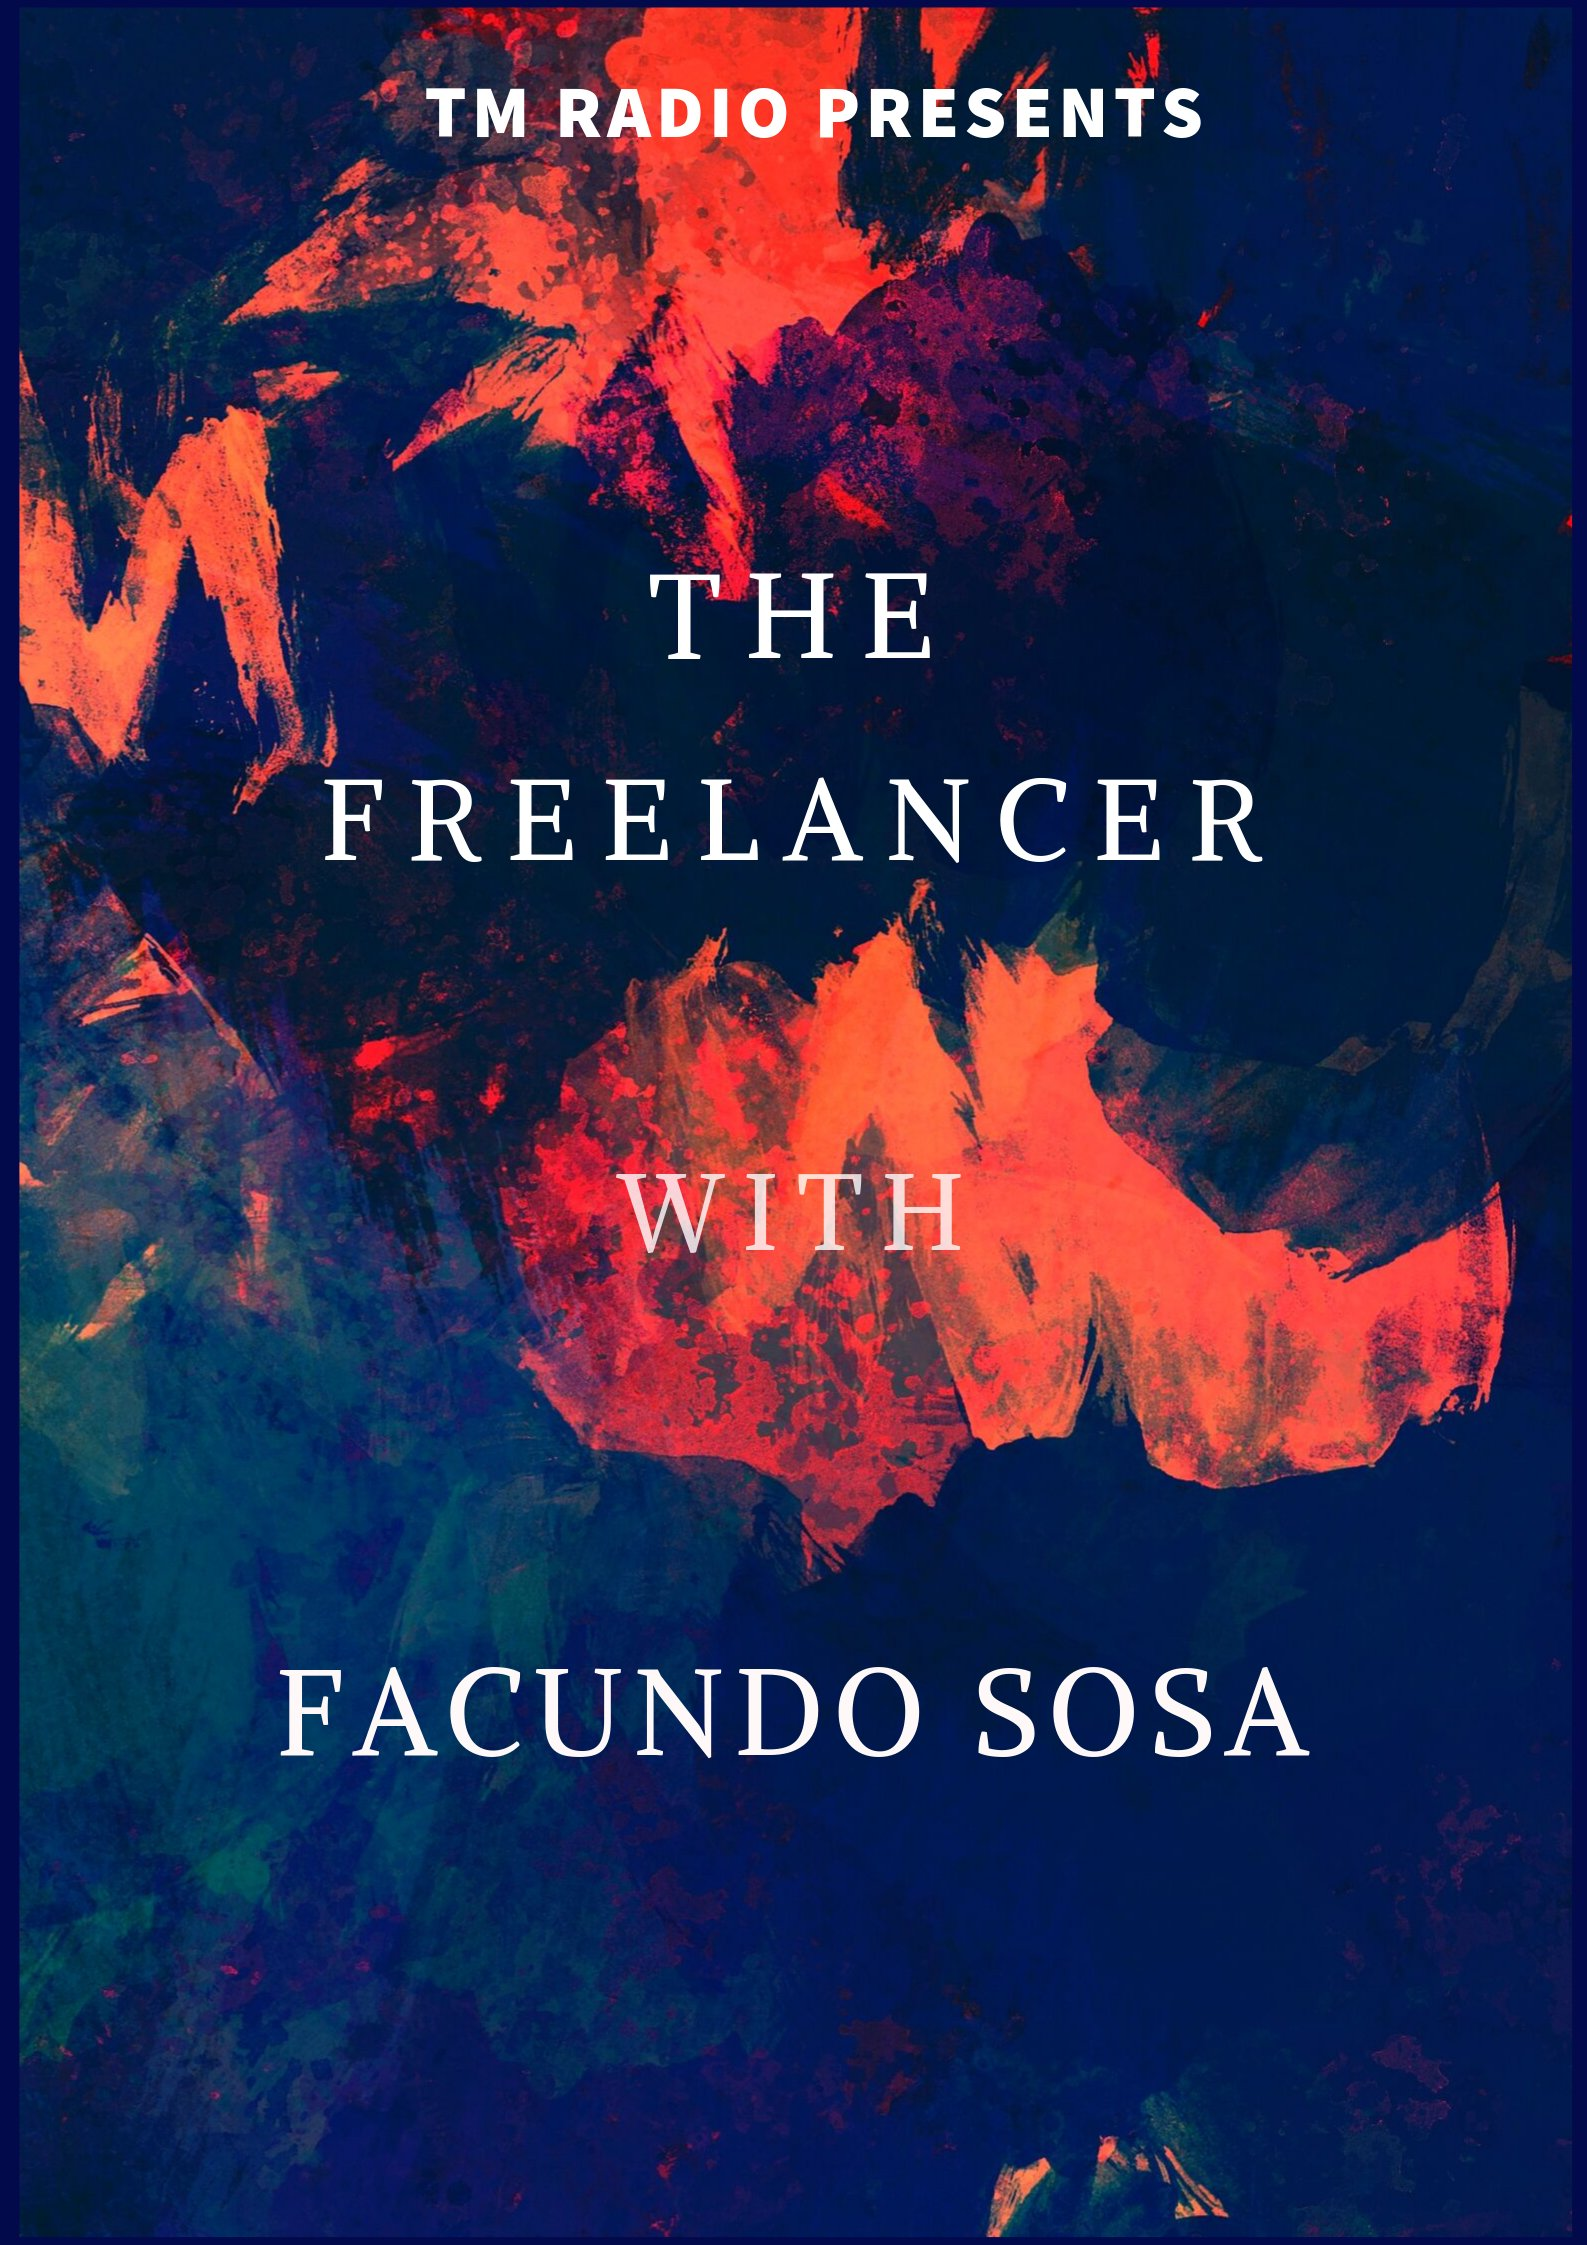 The Freelancer banner logo